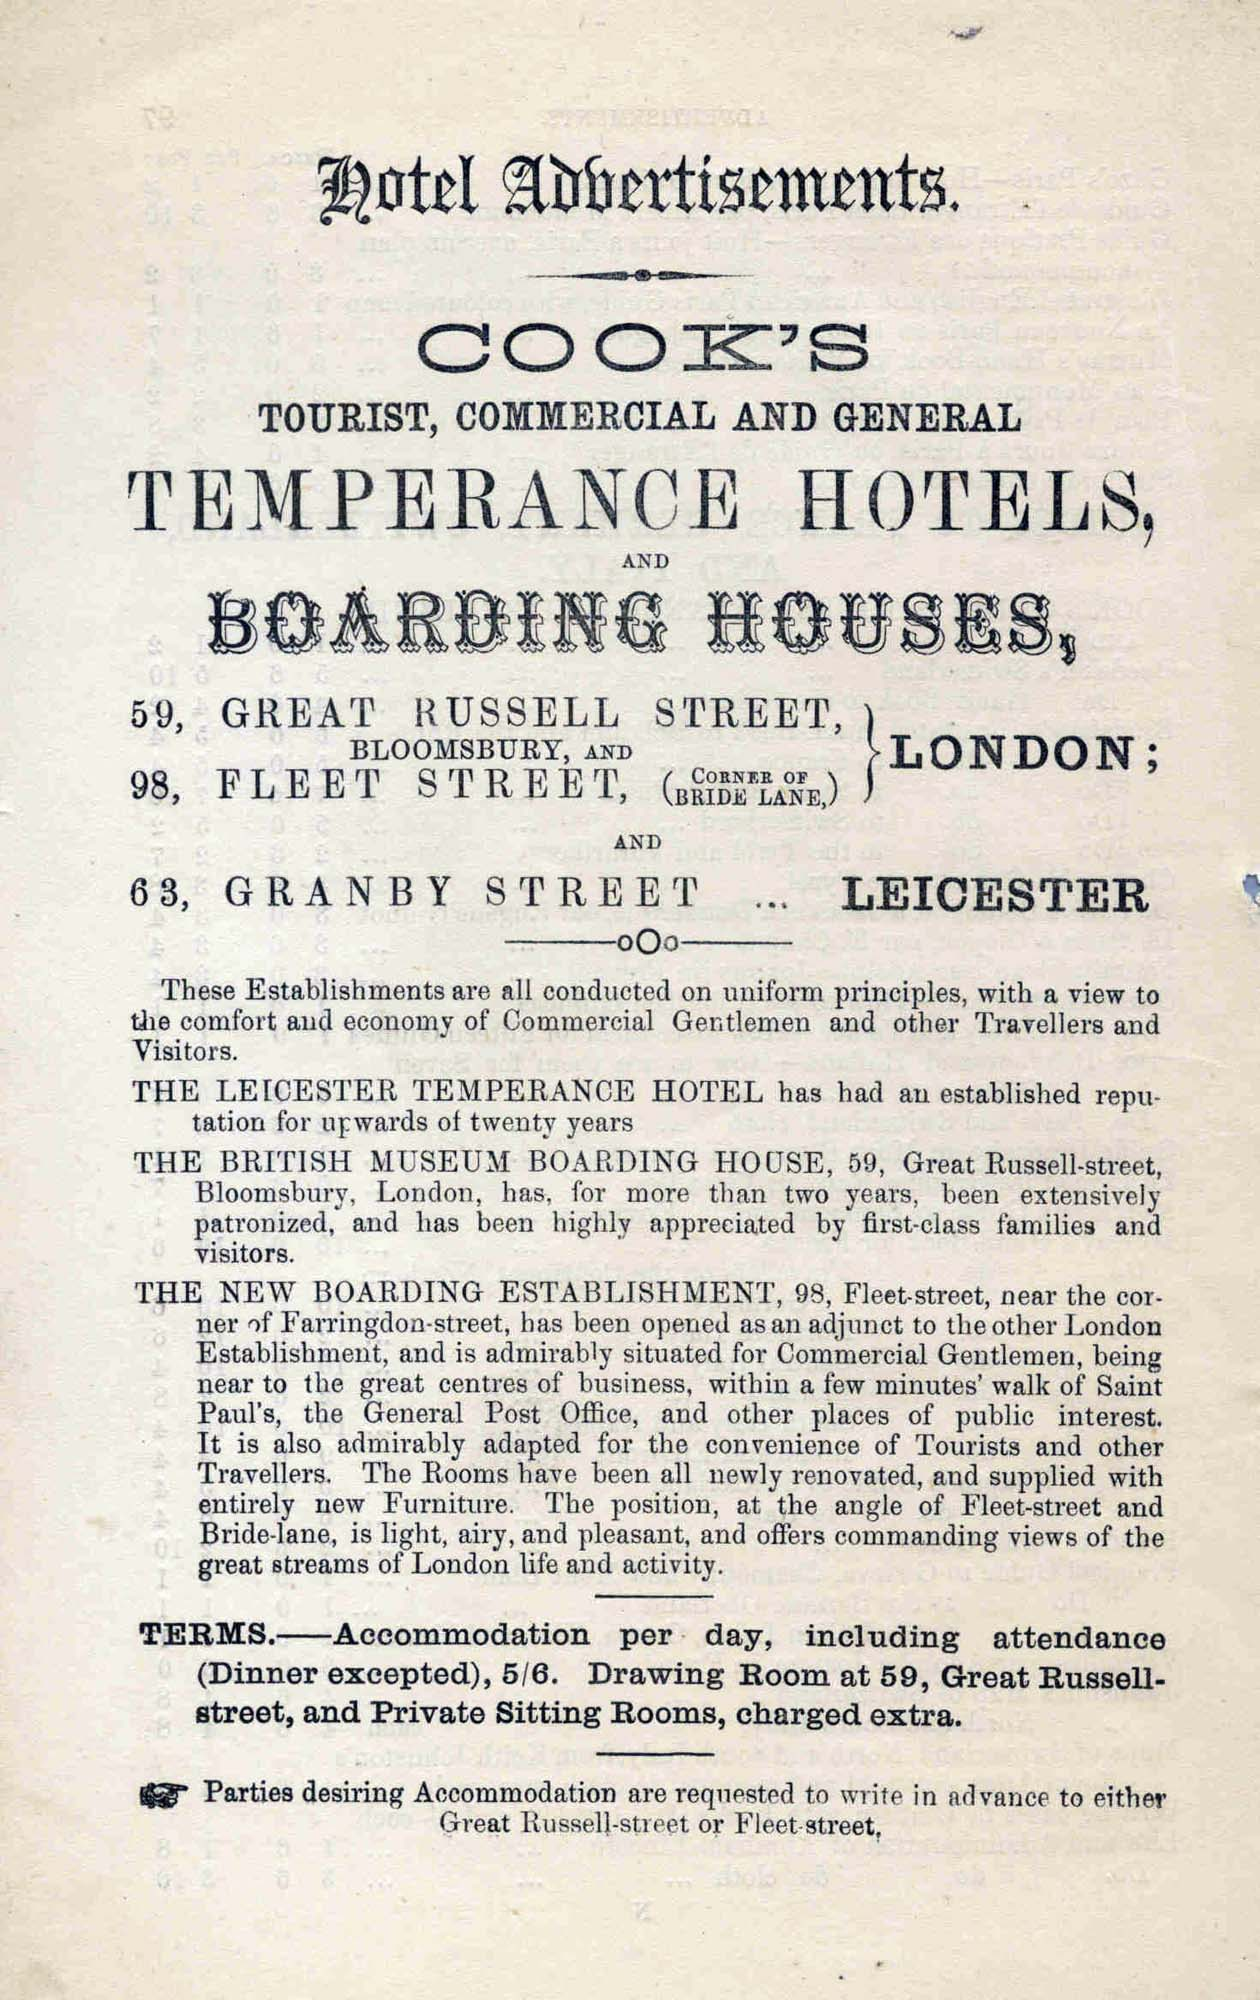 An advertisement for Cook's Temperance Hotel - Thomas Cook Archives